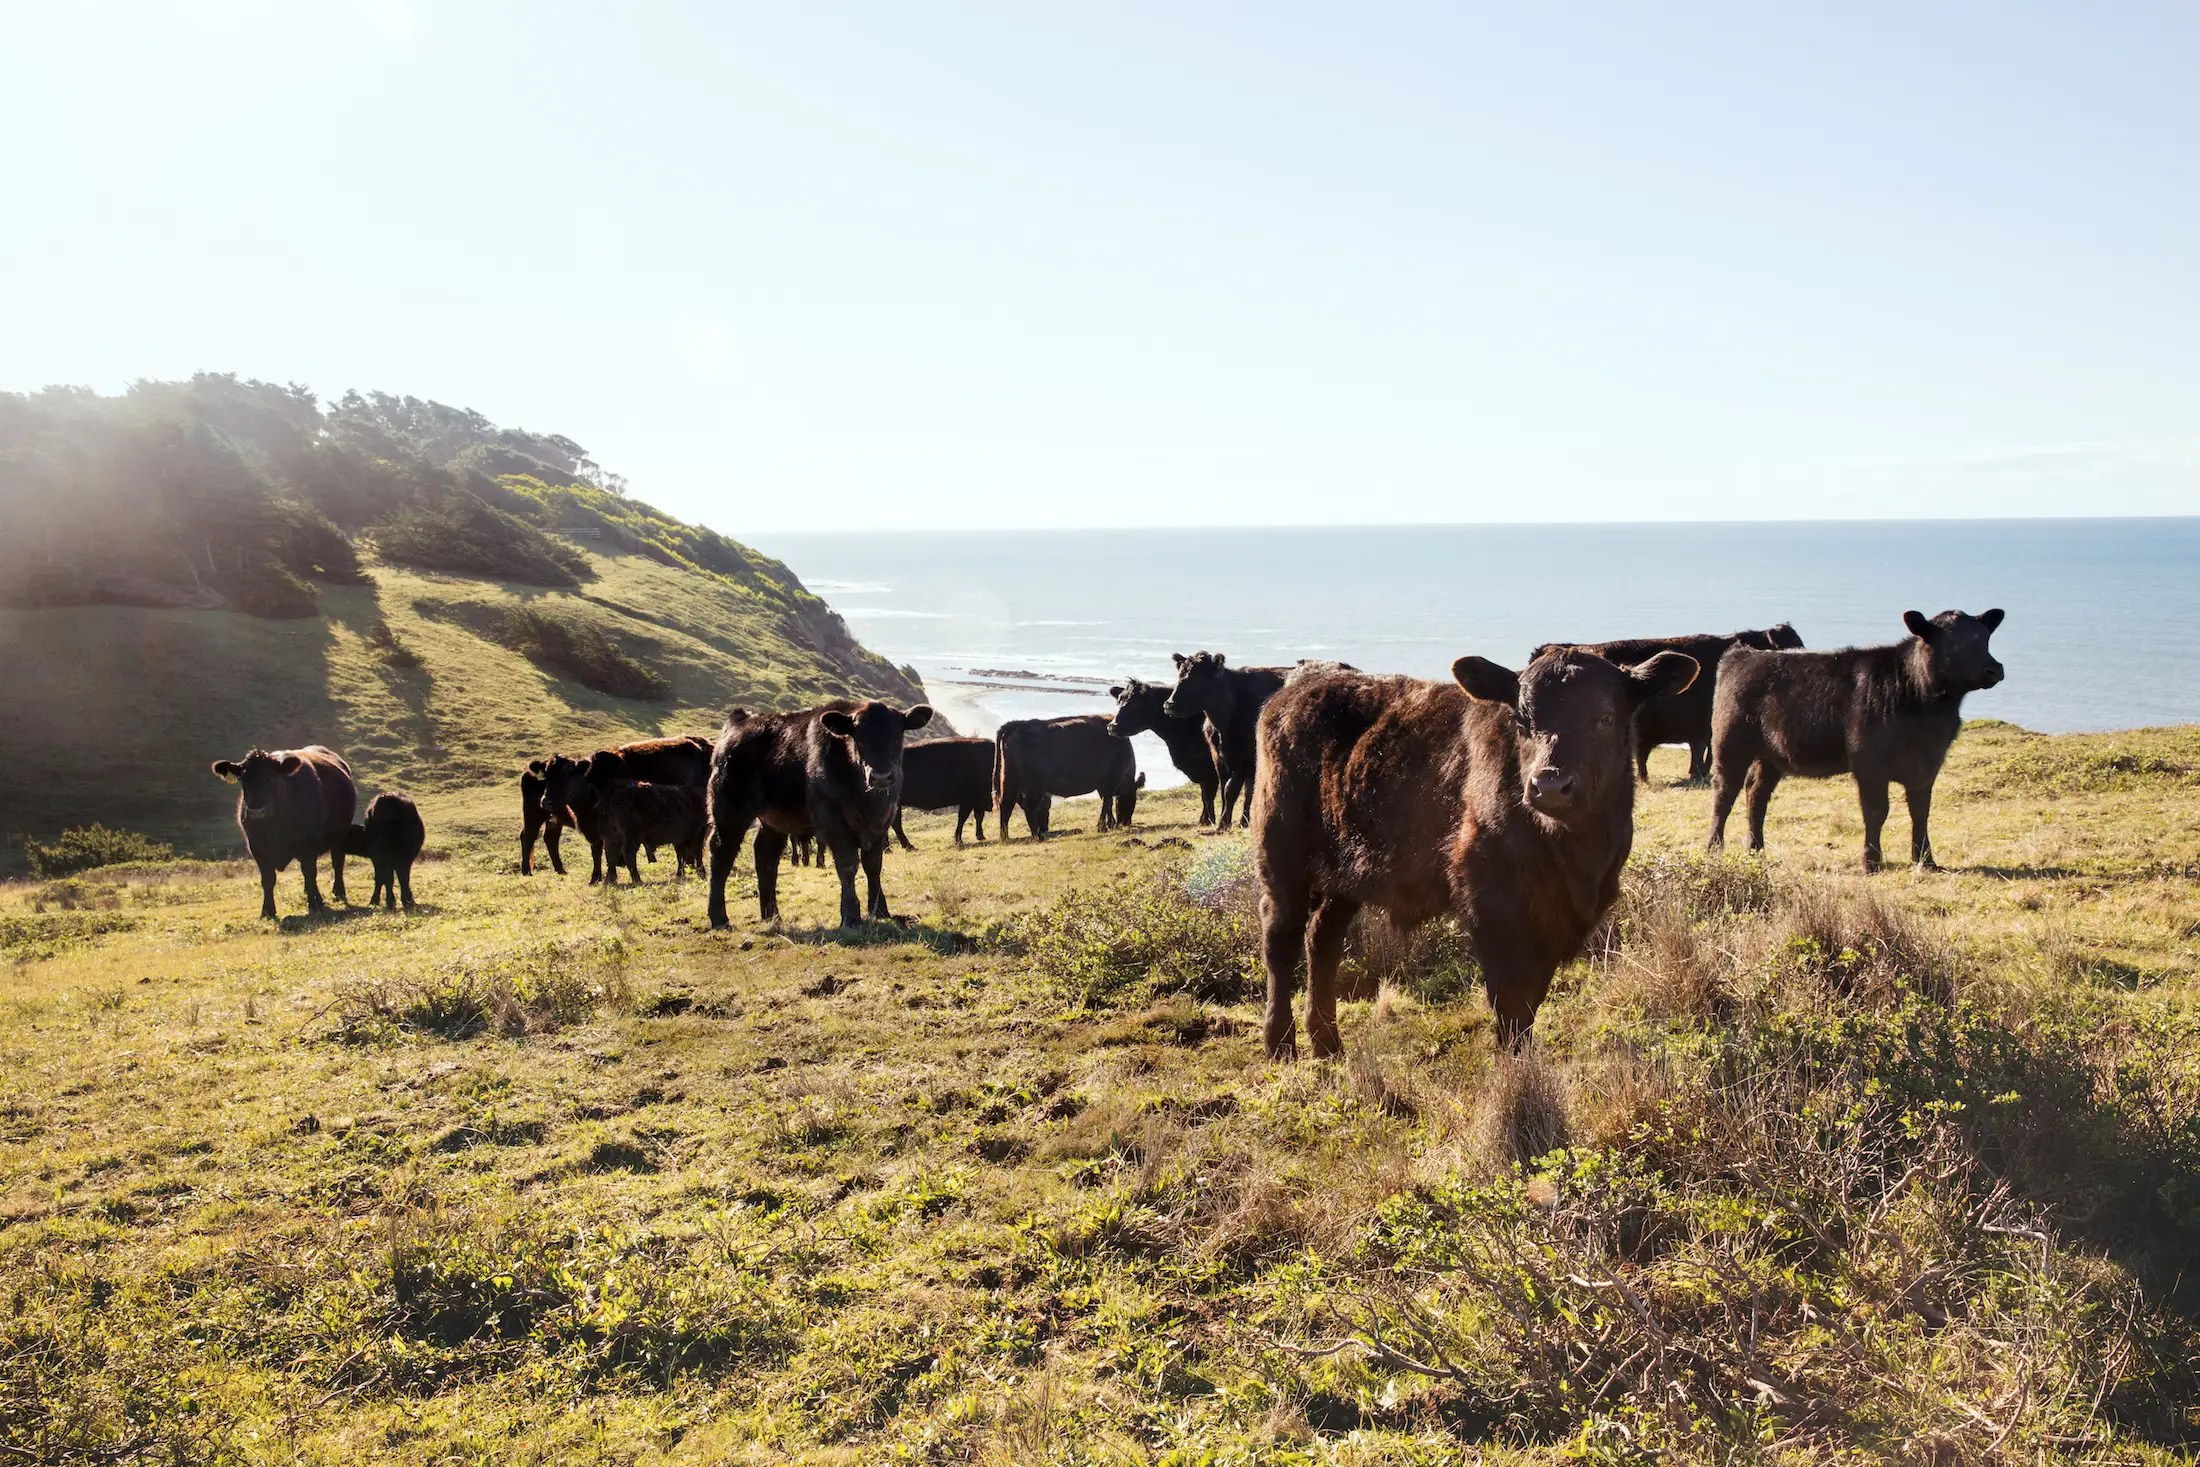 Though New Zealand is far from the US, Niman says ranches there can raise cattle at peak condition when it's wintertime in North America.